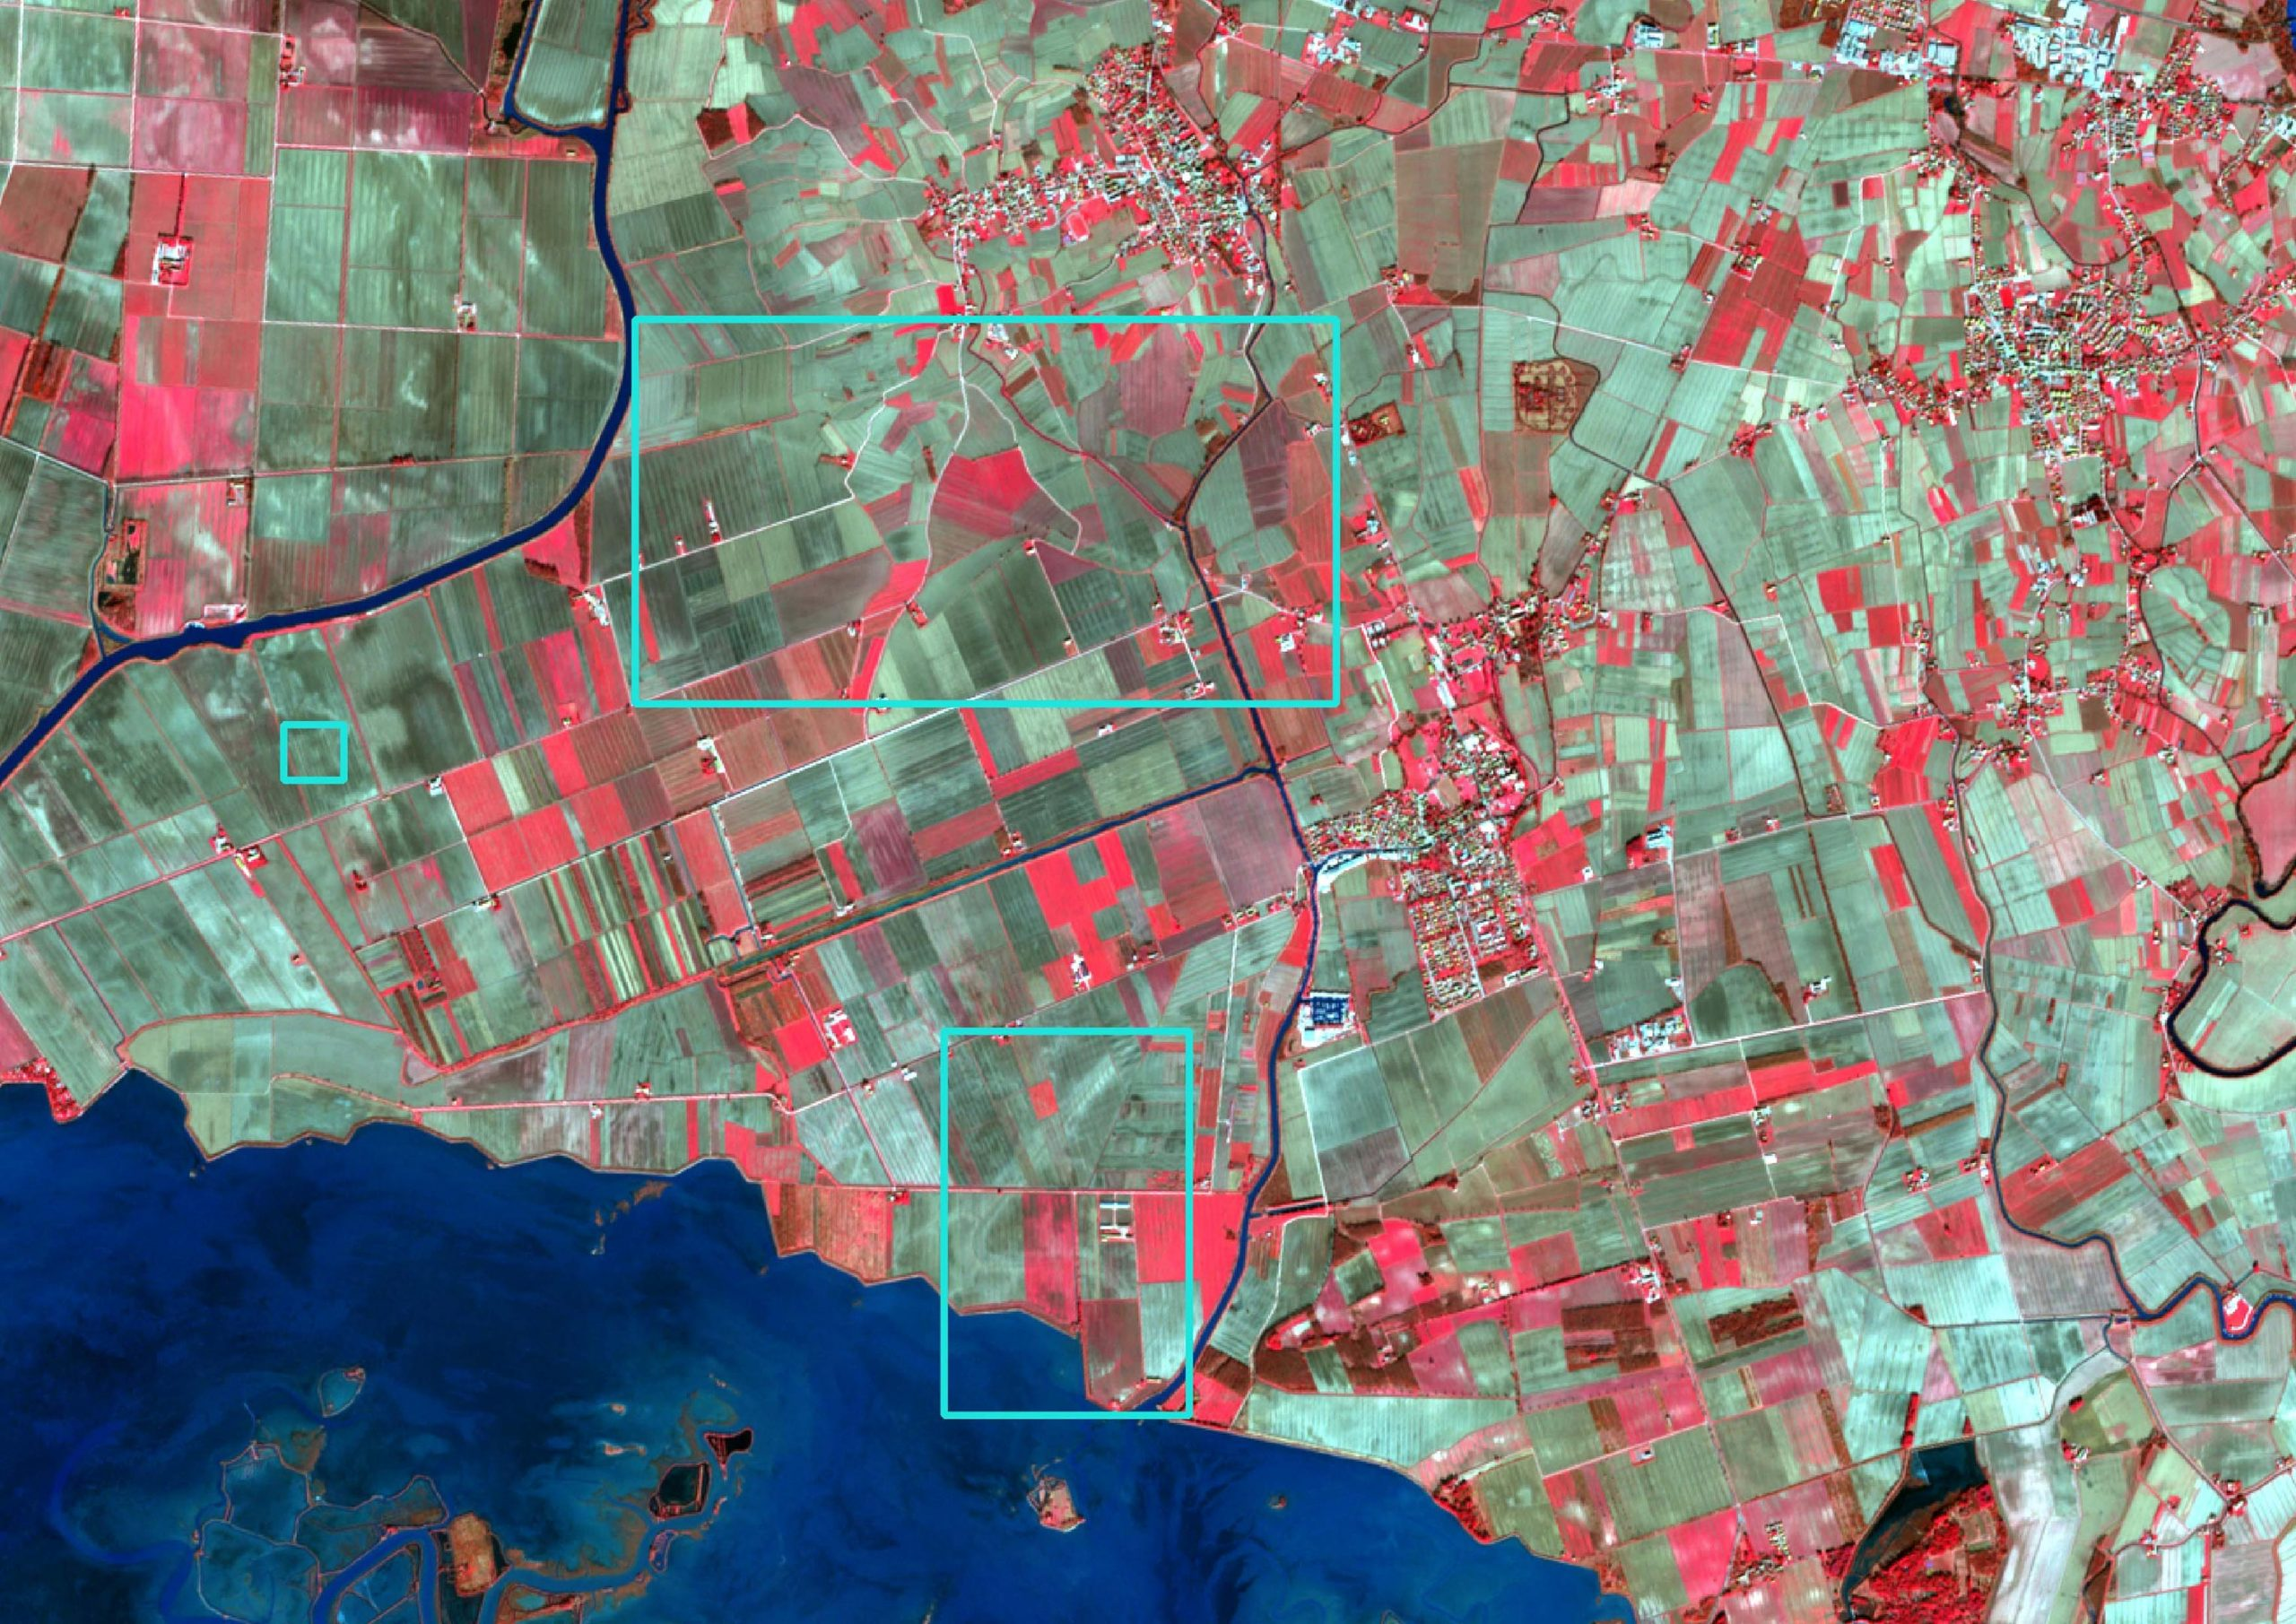 Discovering Hidden Archaeological Sites With AI and Satellite Images